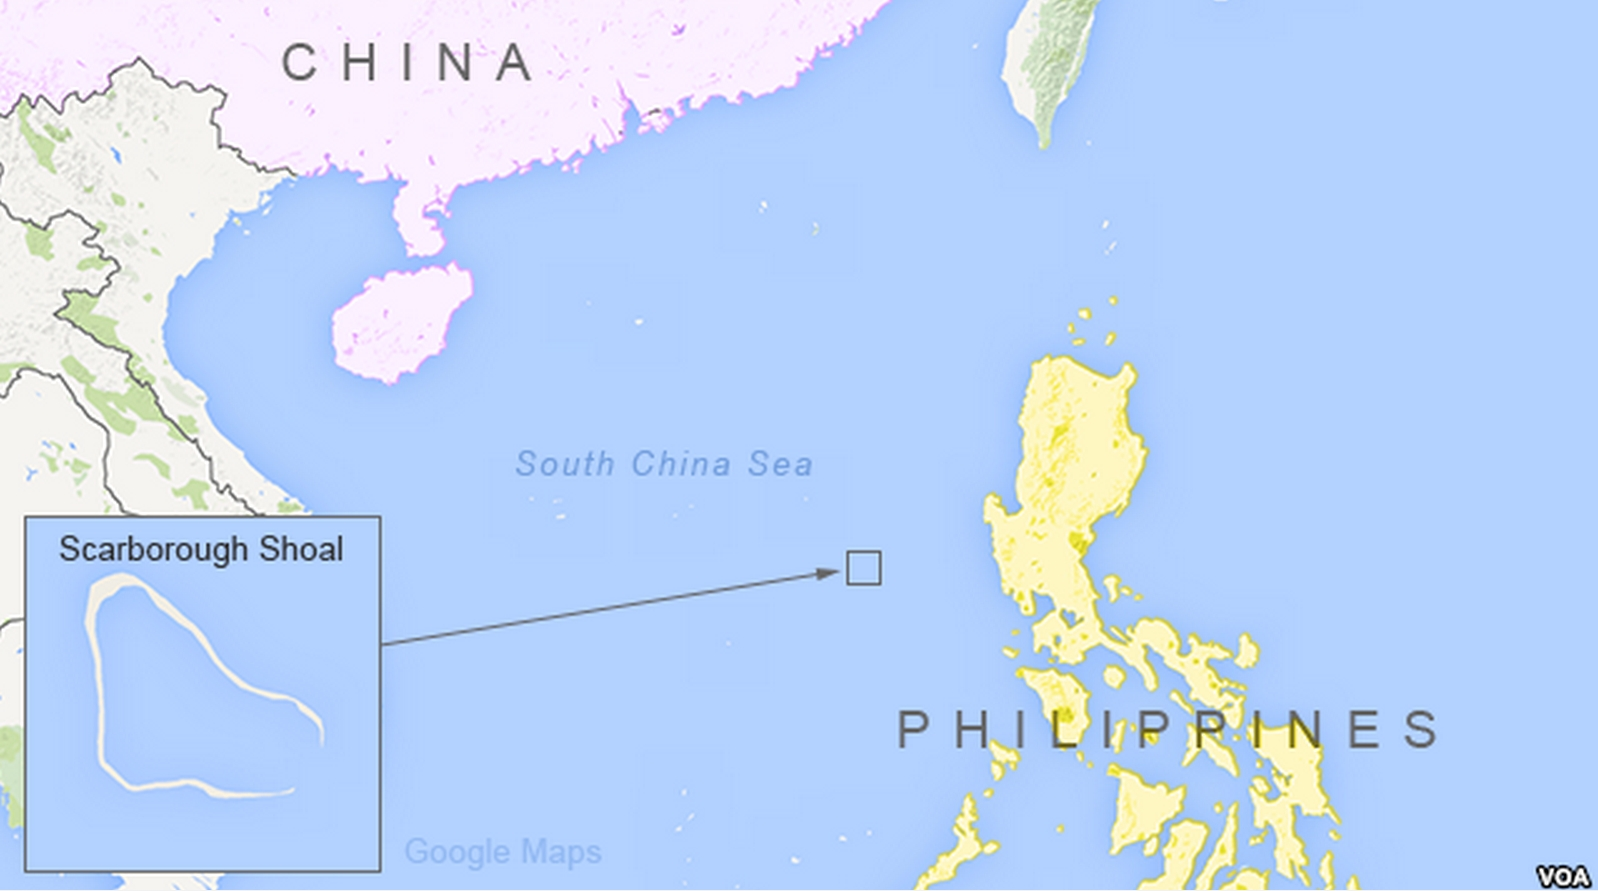 Scarborough Shoal in the South China Sea